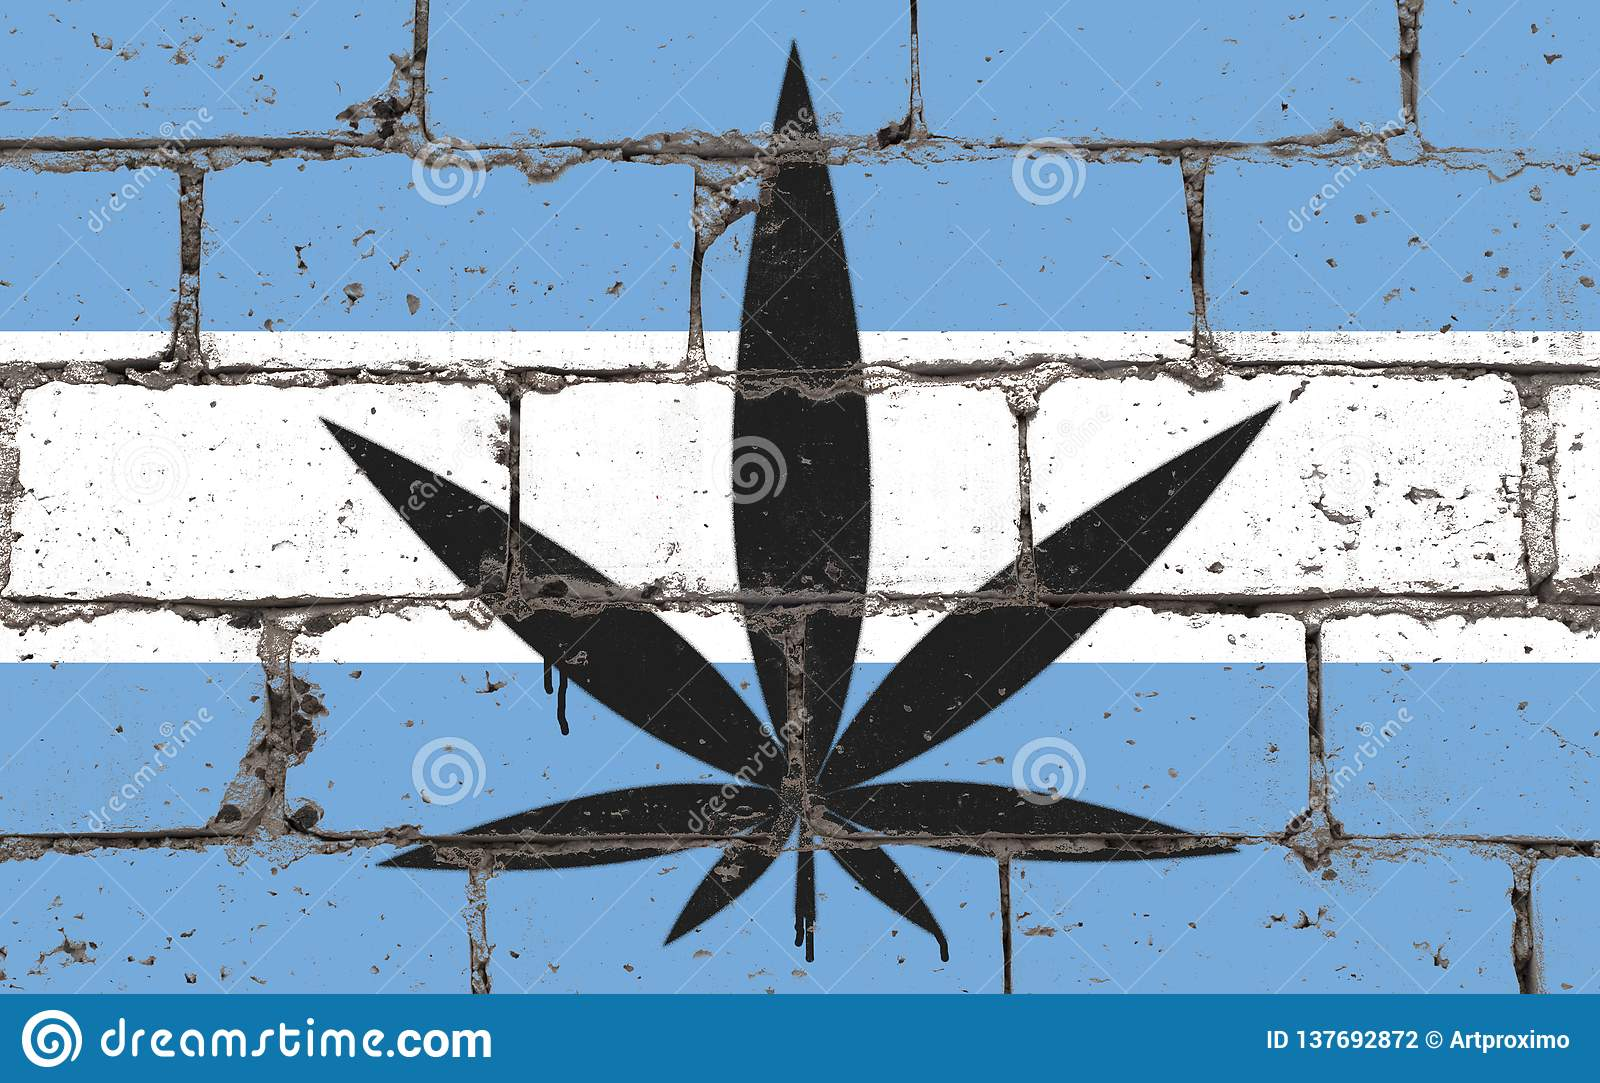 Composite Image Of Stencil Graffiti >> Graffiti Street Art Spray Drawing On Stencil Cannabis Leaf On Brick